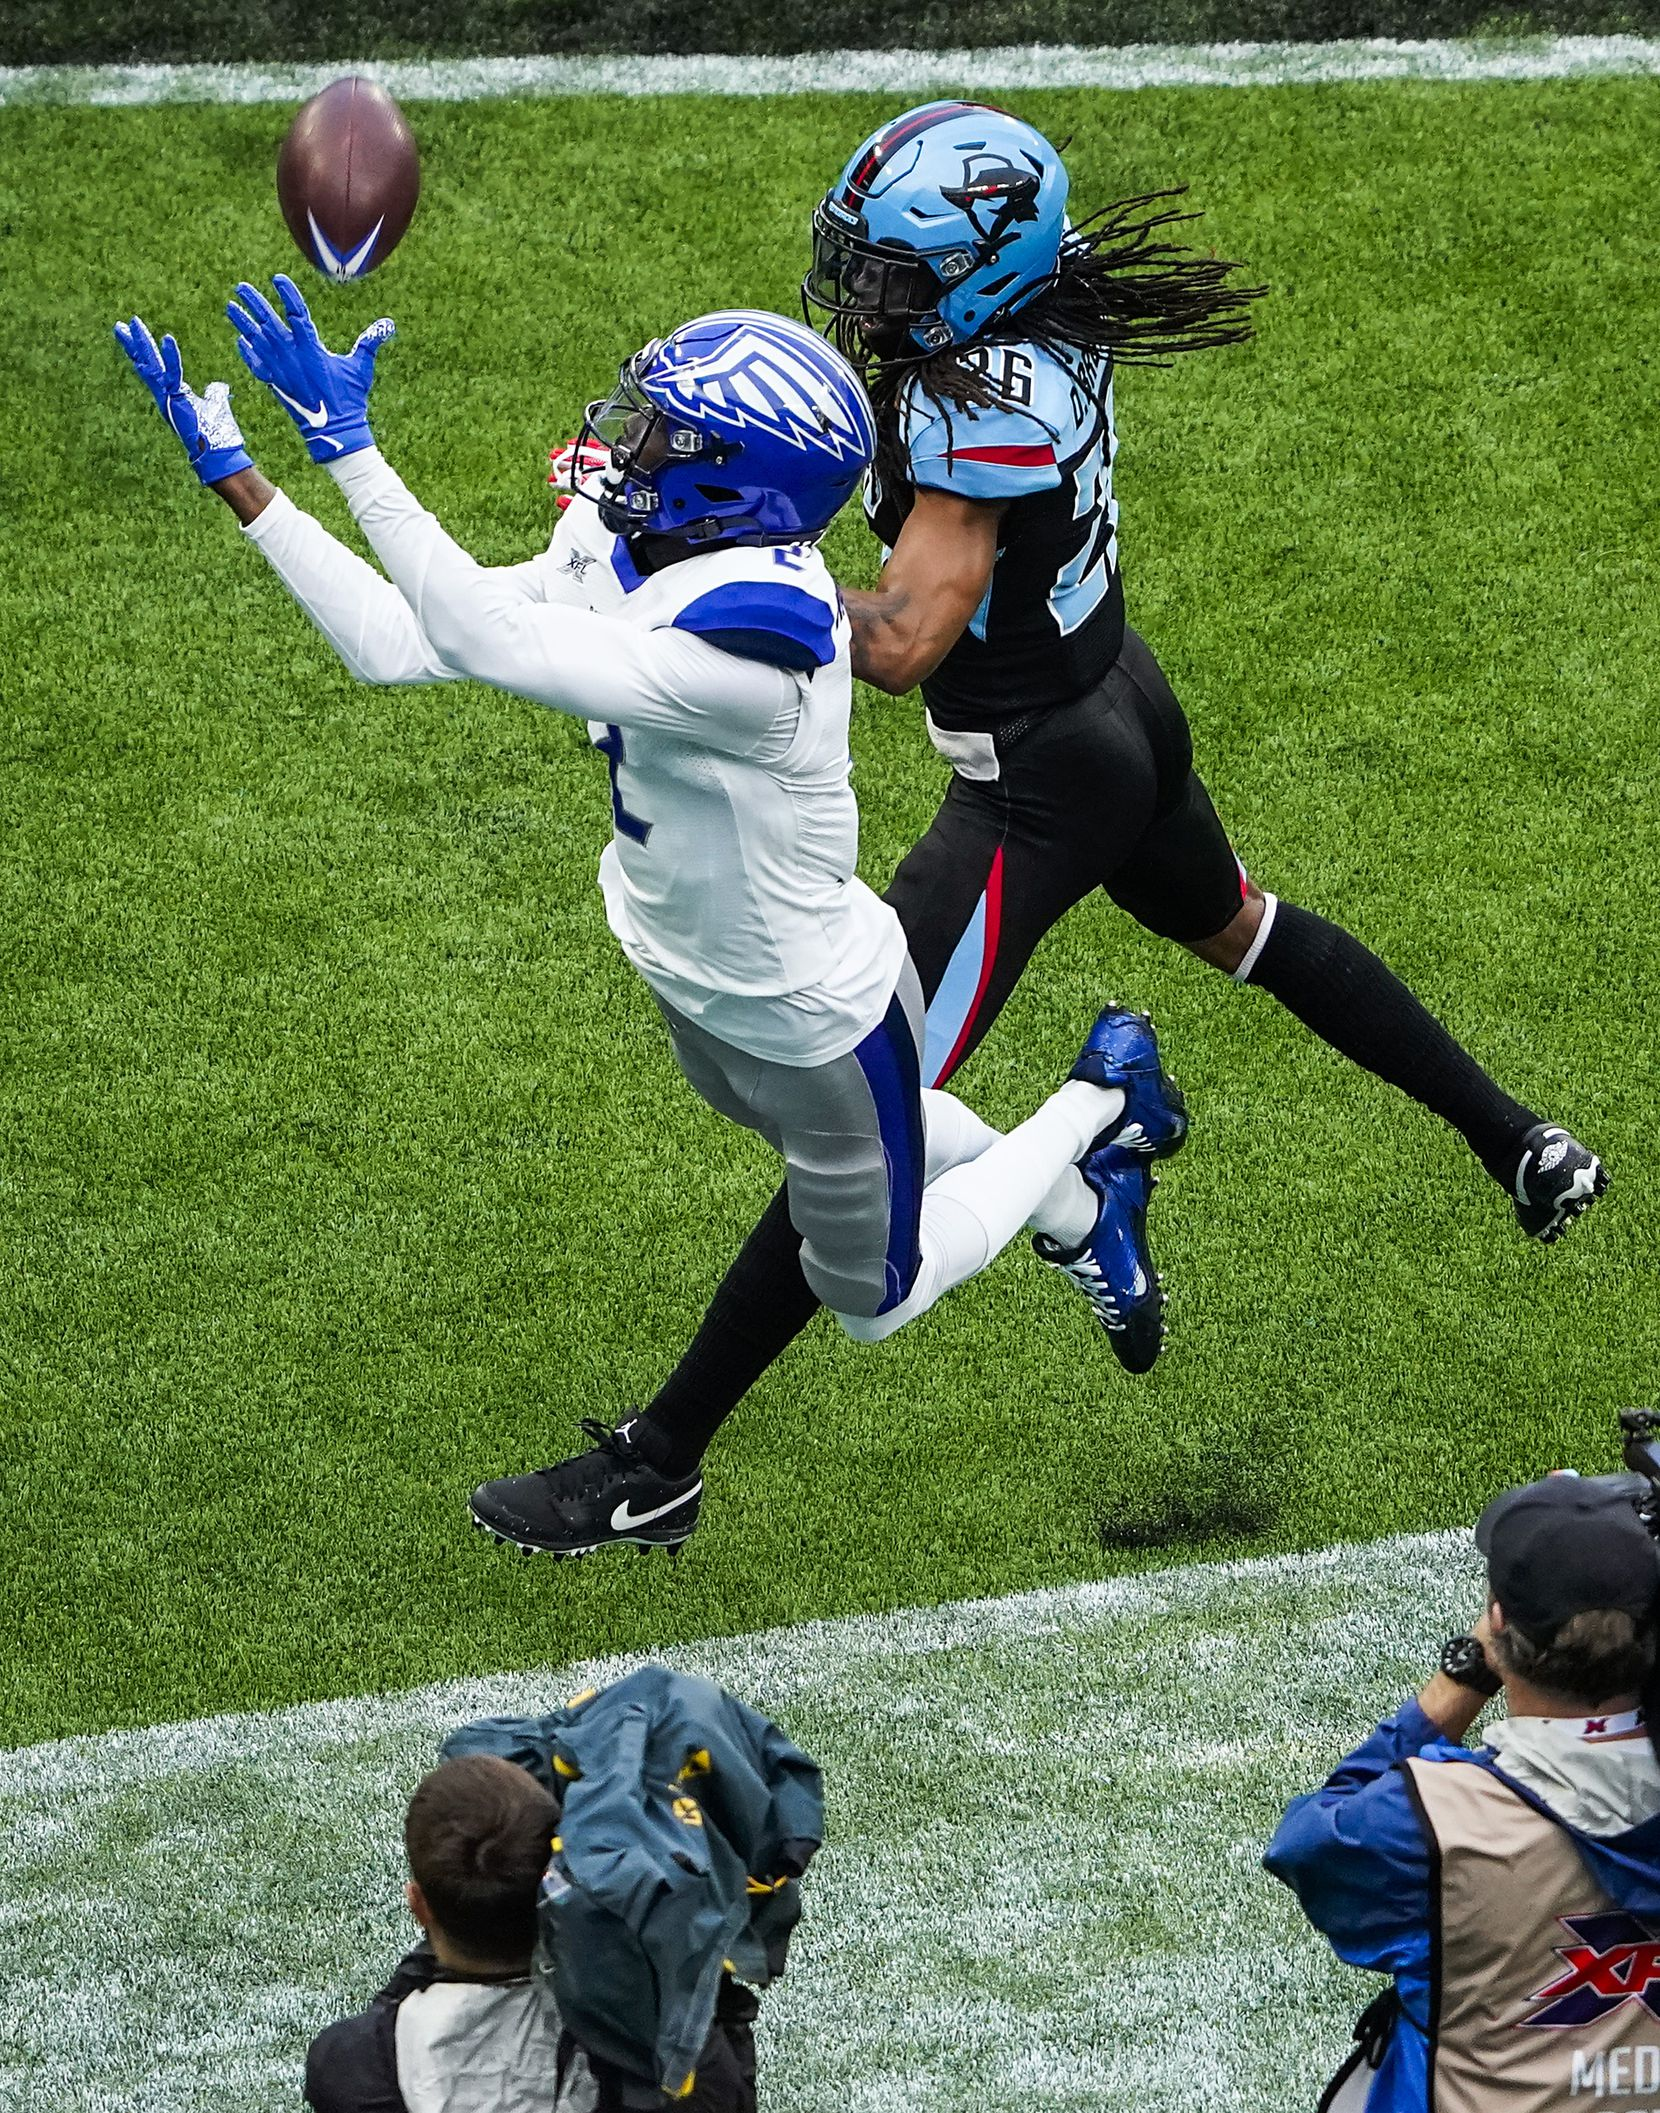 St. Louis Battlehawks wide receiver L'Damian Washington (2) canÕt make the catch on an extra point attempt as Dallas Renegades cornerback Donatello Brown (26) defend during the first half of an XFL football game at Globe Life Park on Sunday, Feb. 9, 2020, in Arlington.